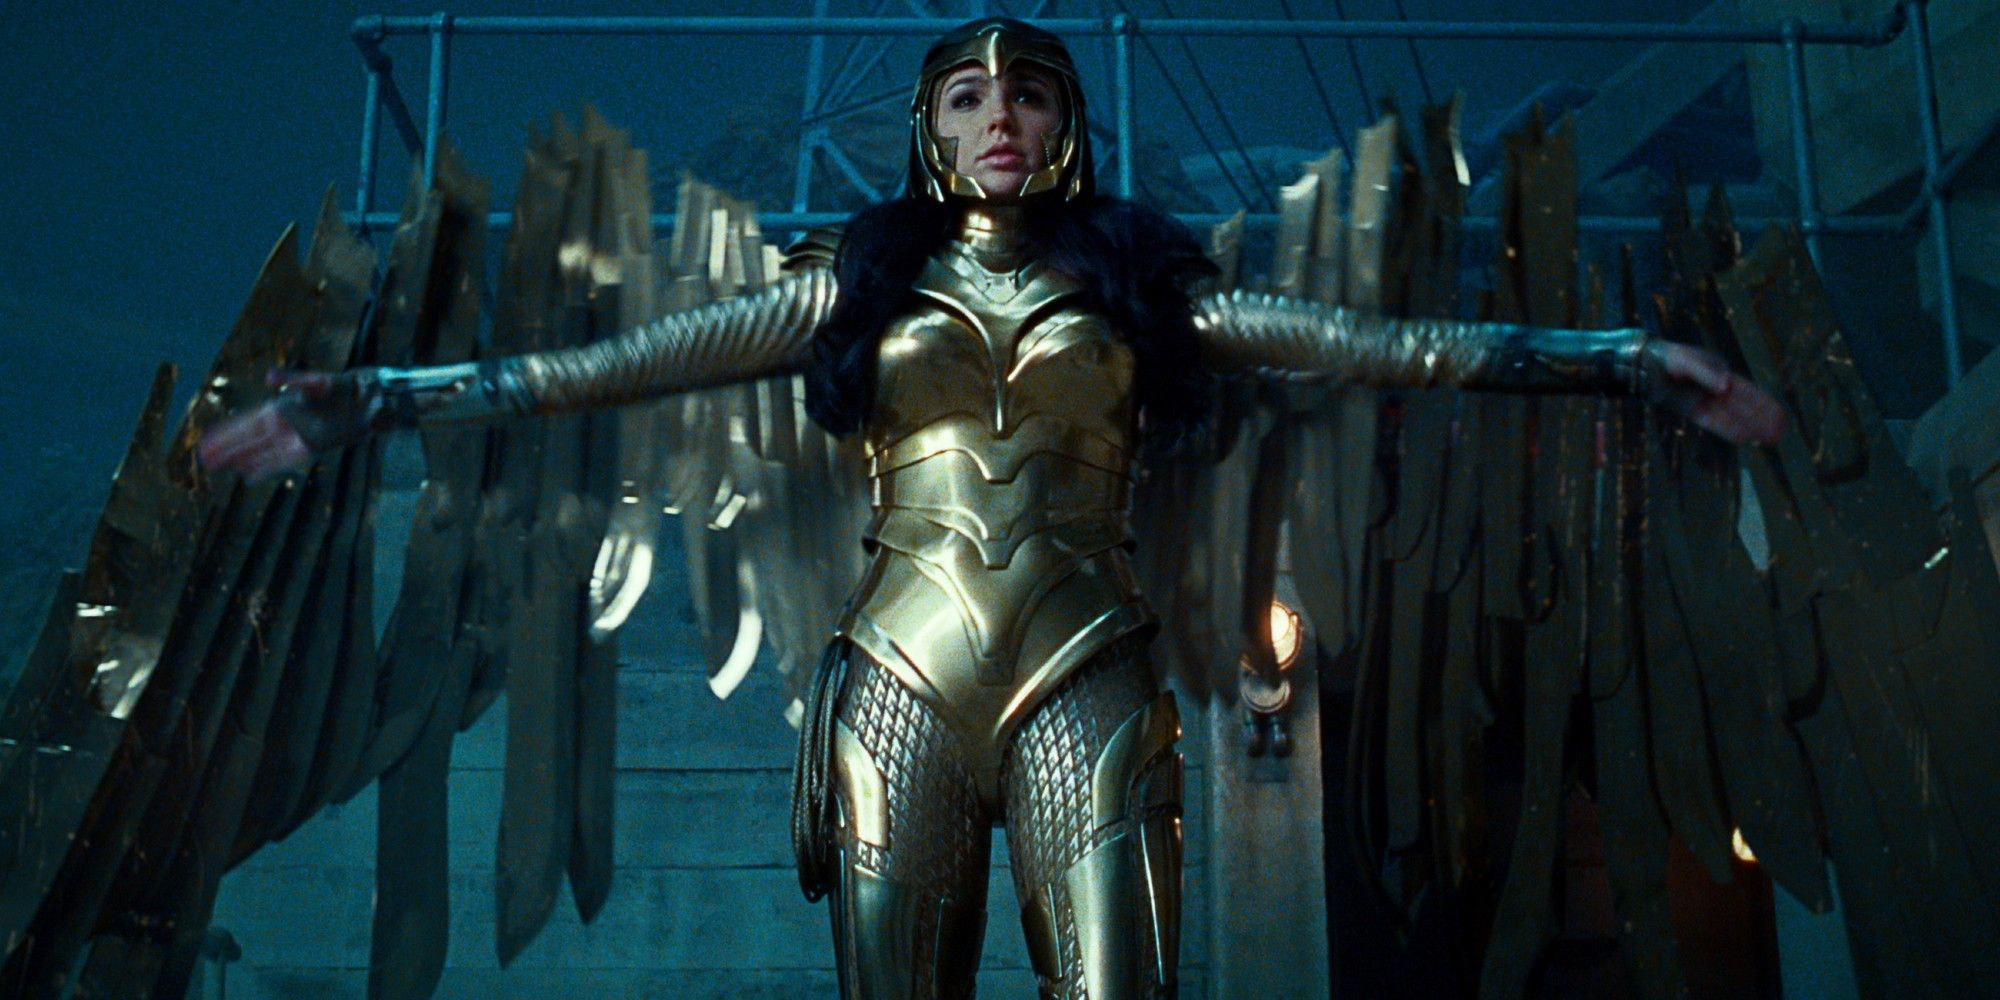 Wonder Woman 1984 Confirms How Diana Got Her Ability to [SPOILER]